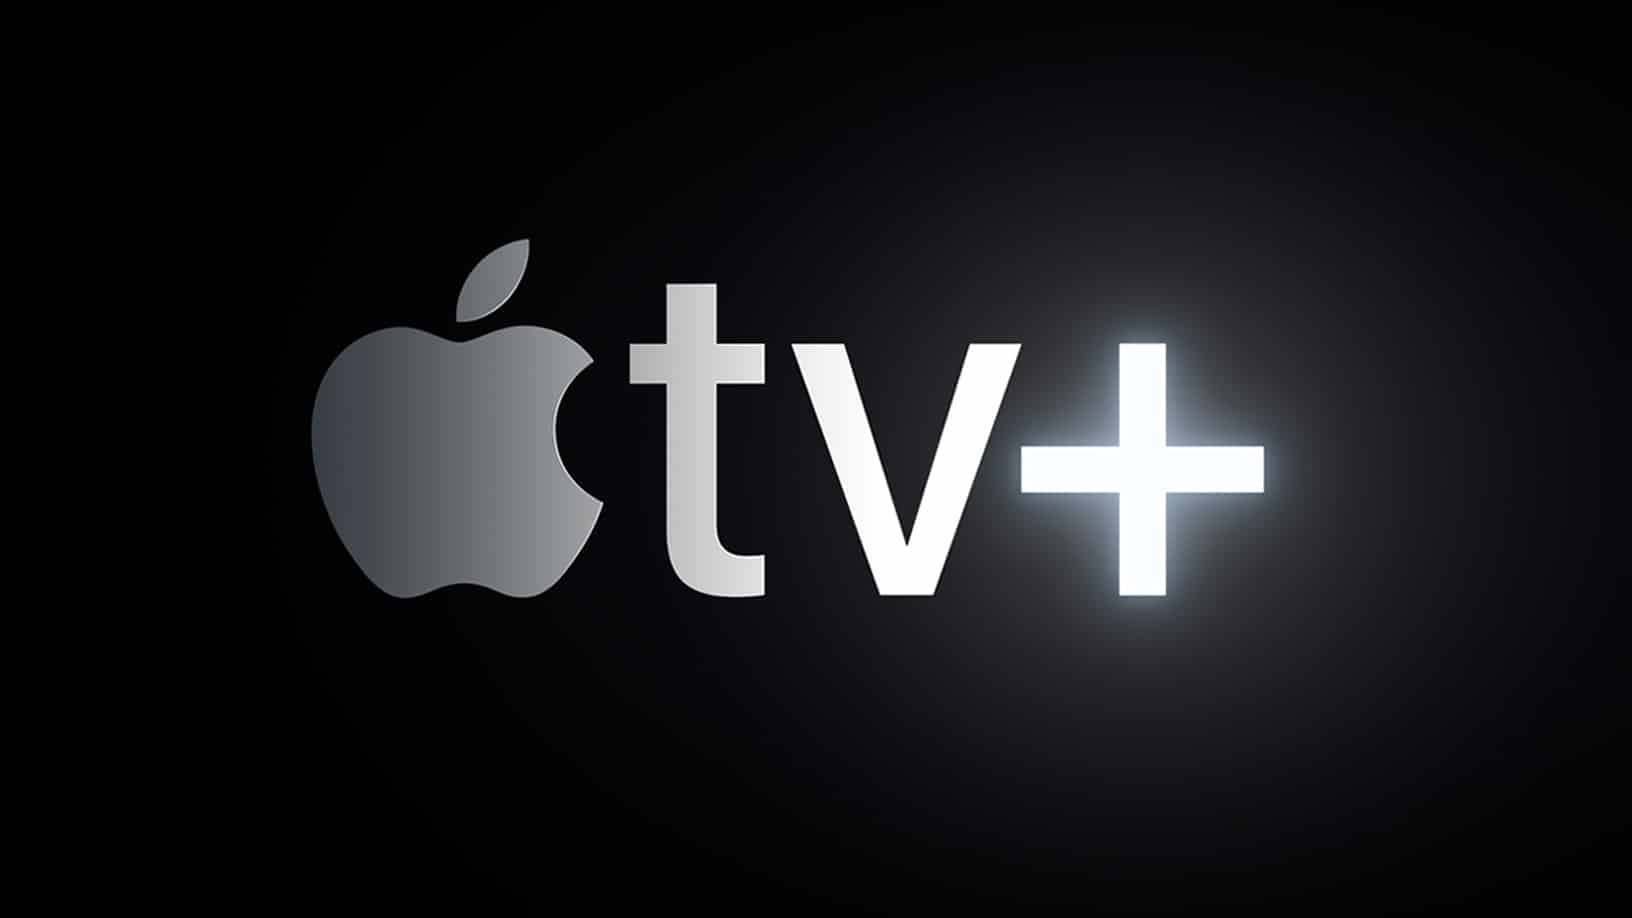 Apple-introduces-apple-tv-plus-03252019